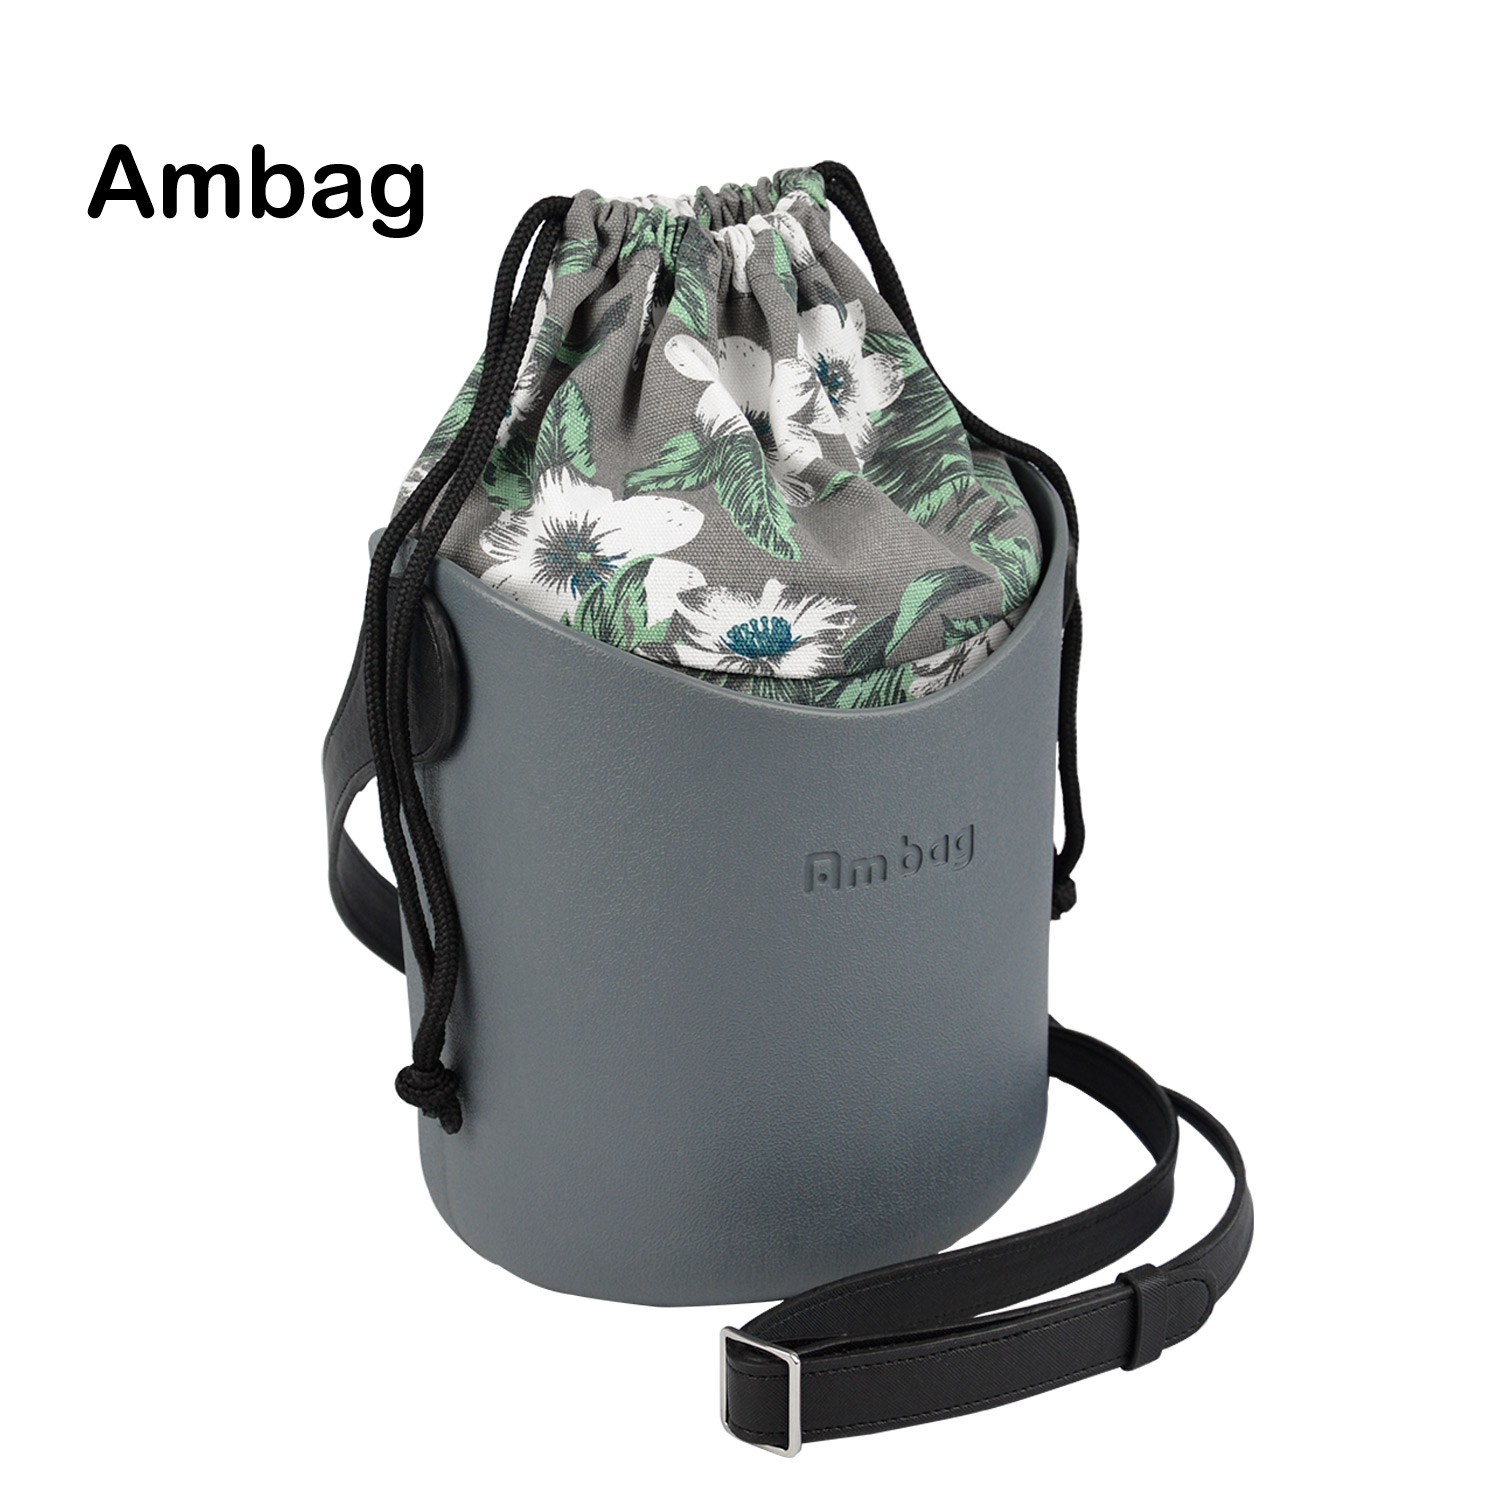 top 10 largest bag ambag ideas and get free shipping - 85lbdndd